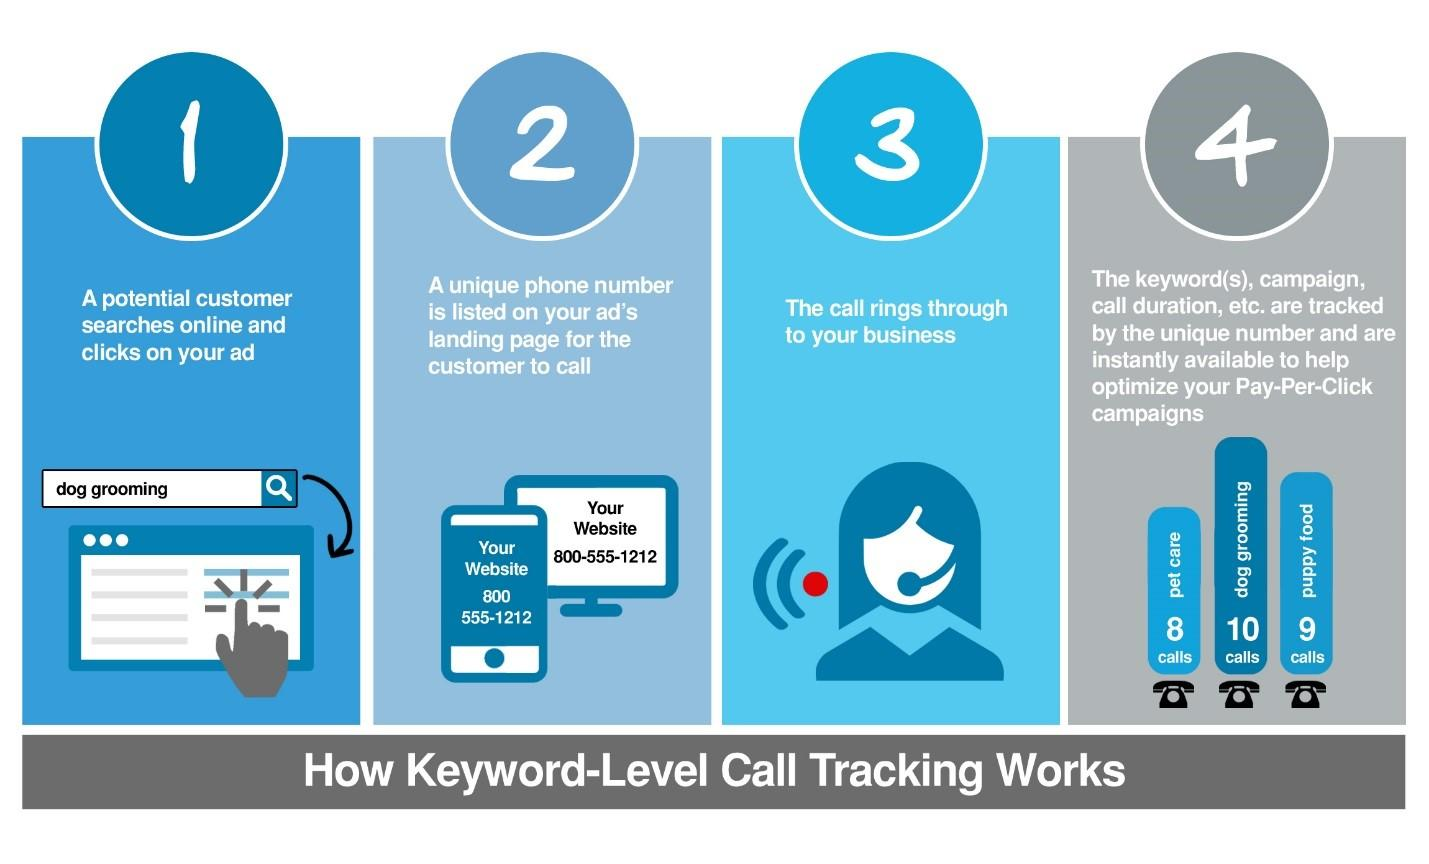 Image of how call tracking works